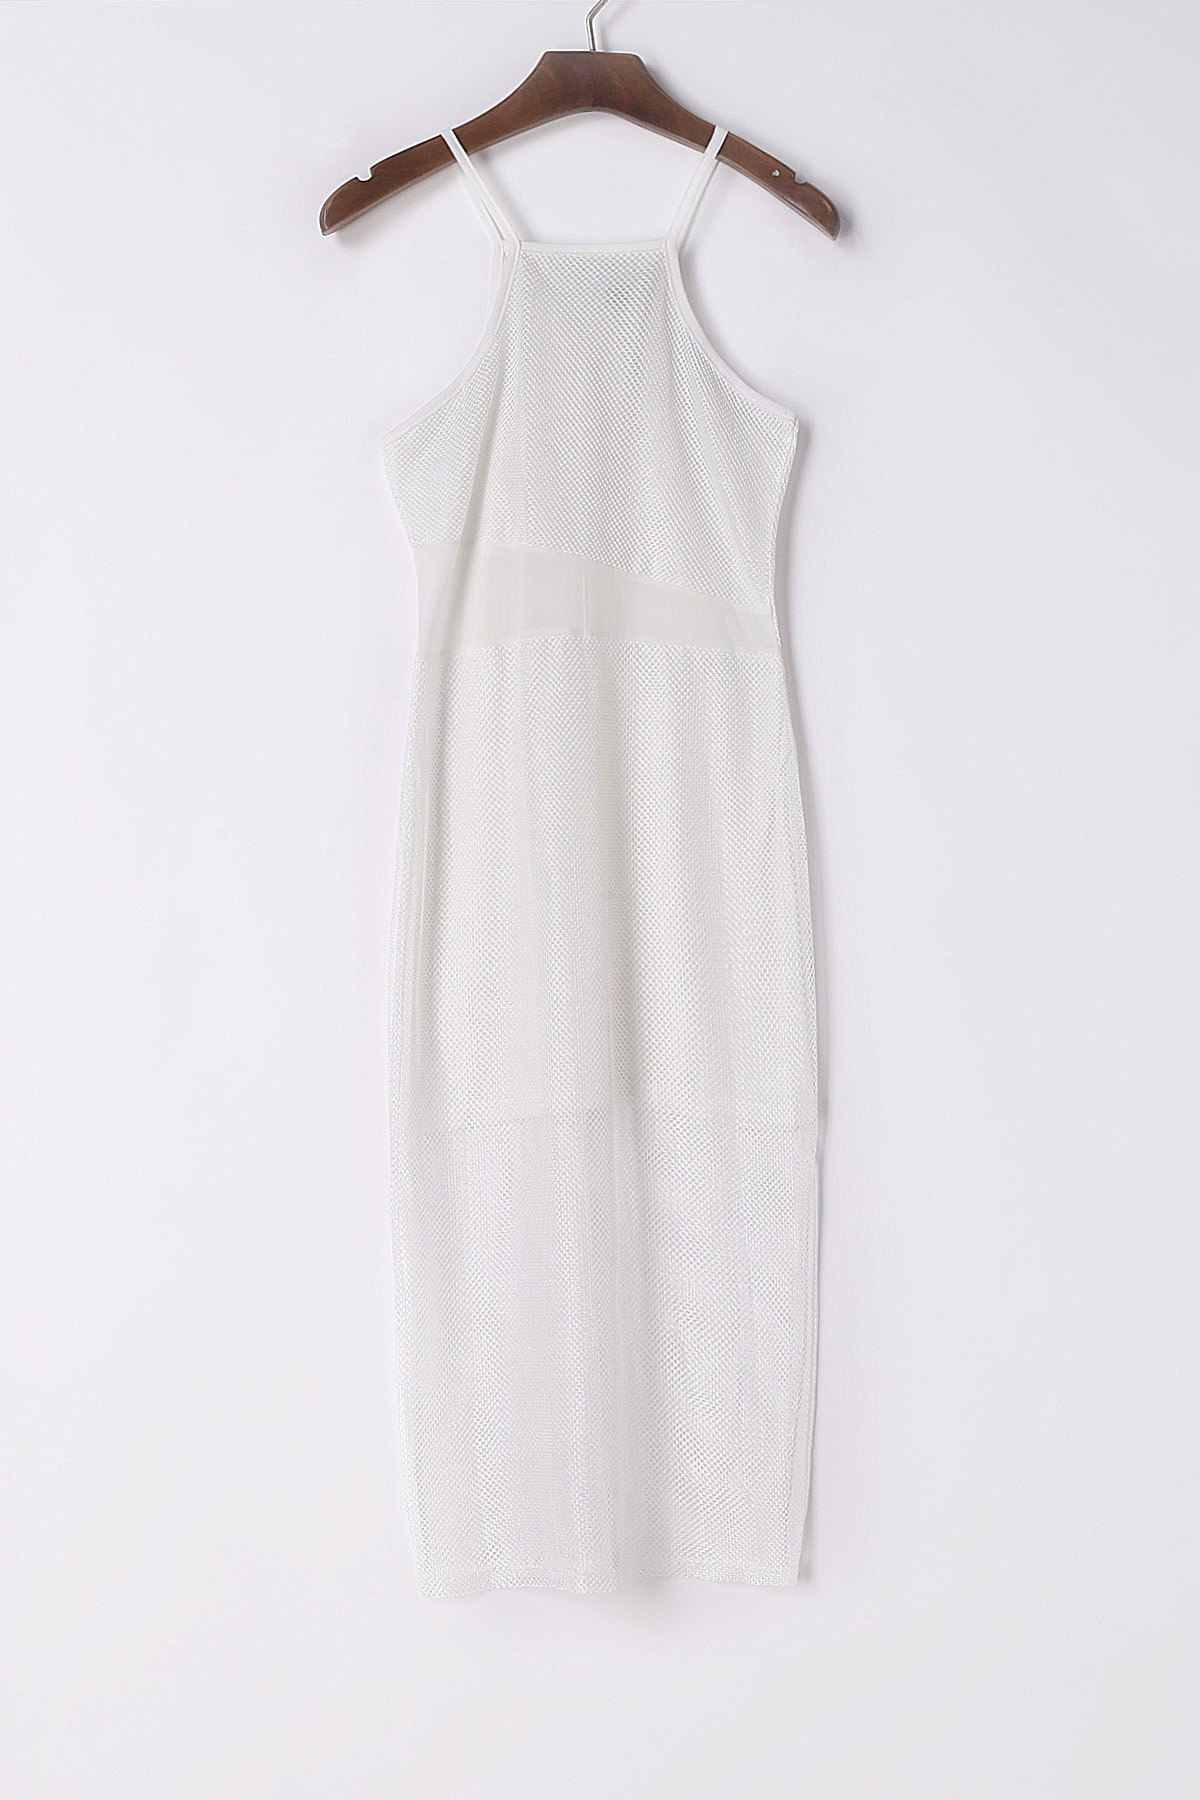 Online Sexy Spaghetti Strap Sleeveless White See-Through Beach Dress For Women